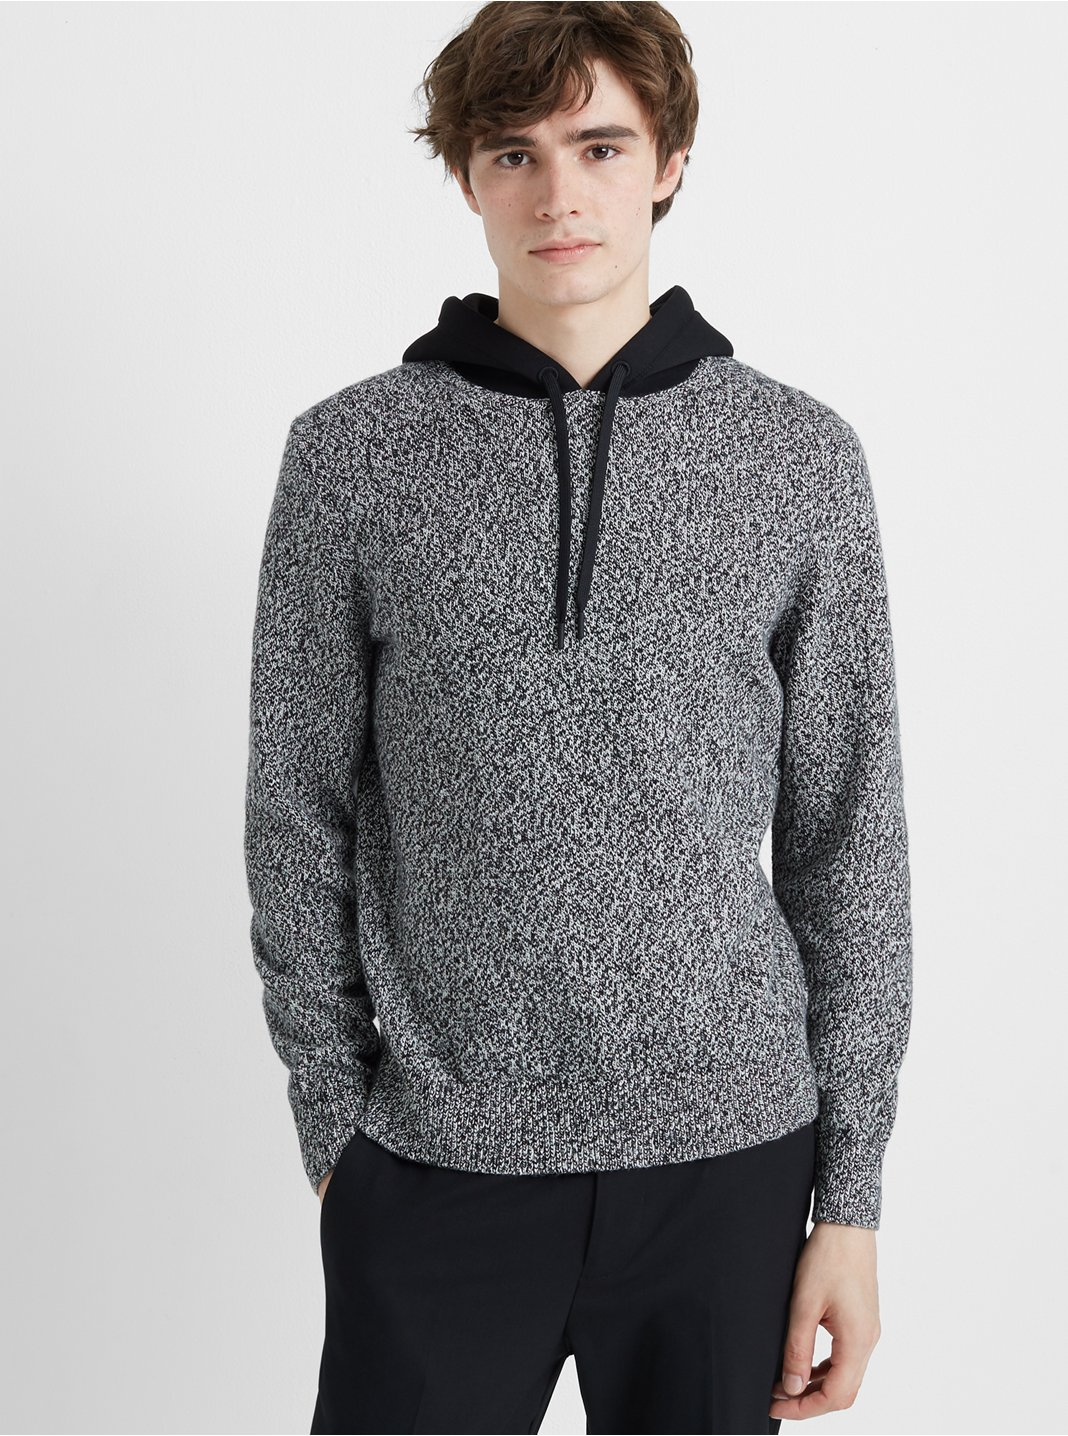 Mixed Material Hoodie